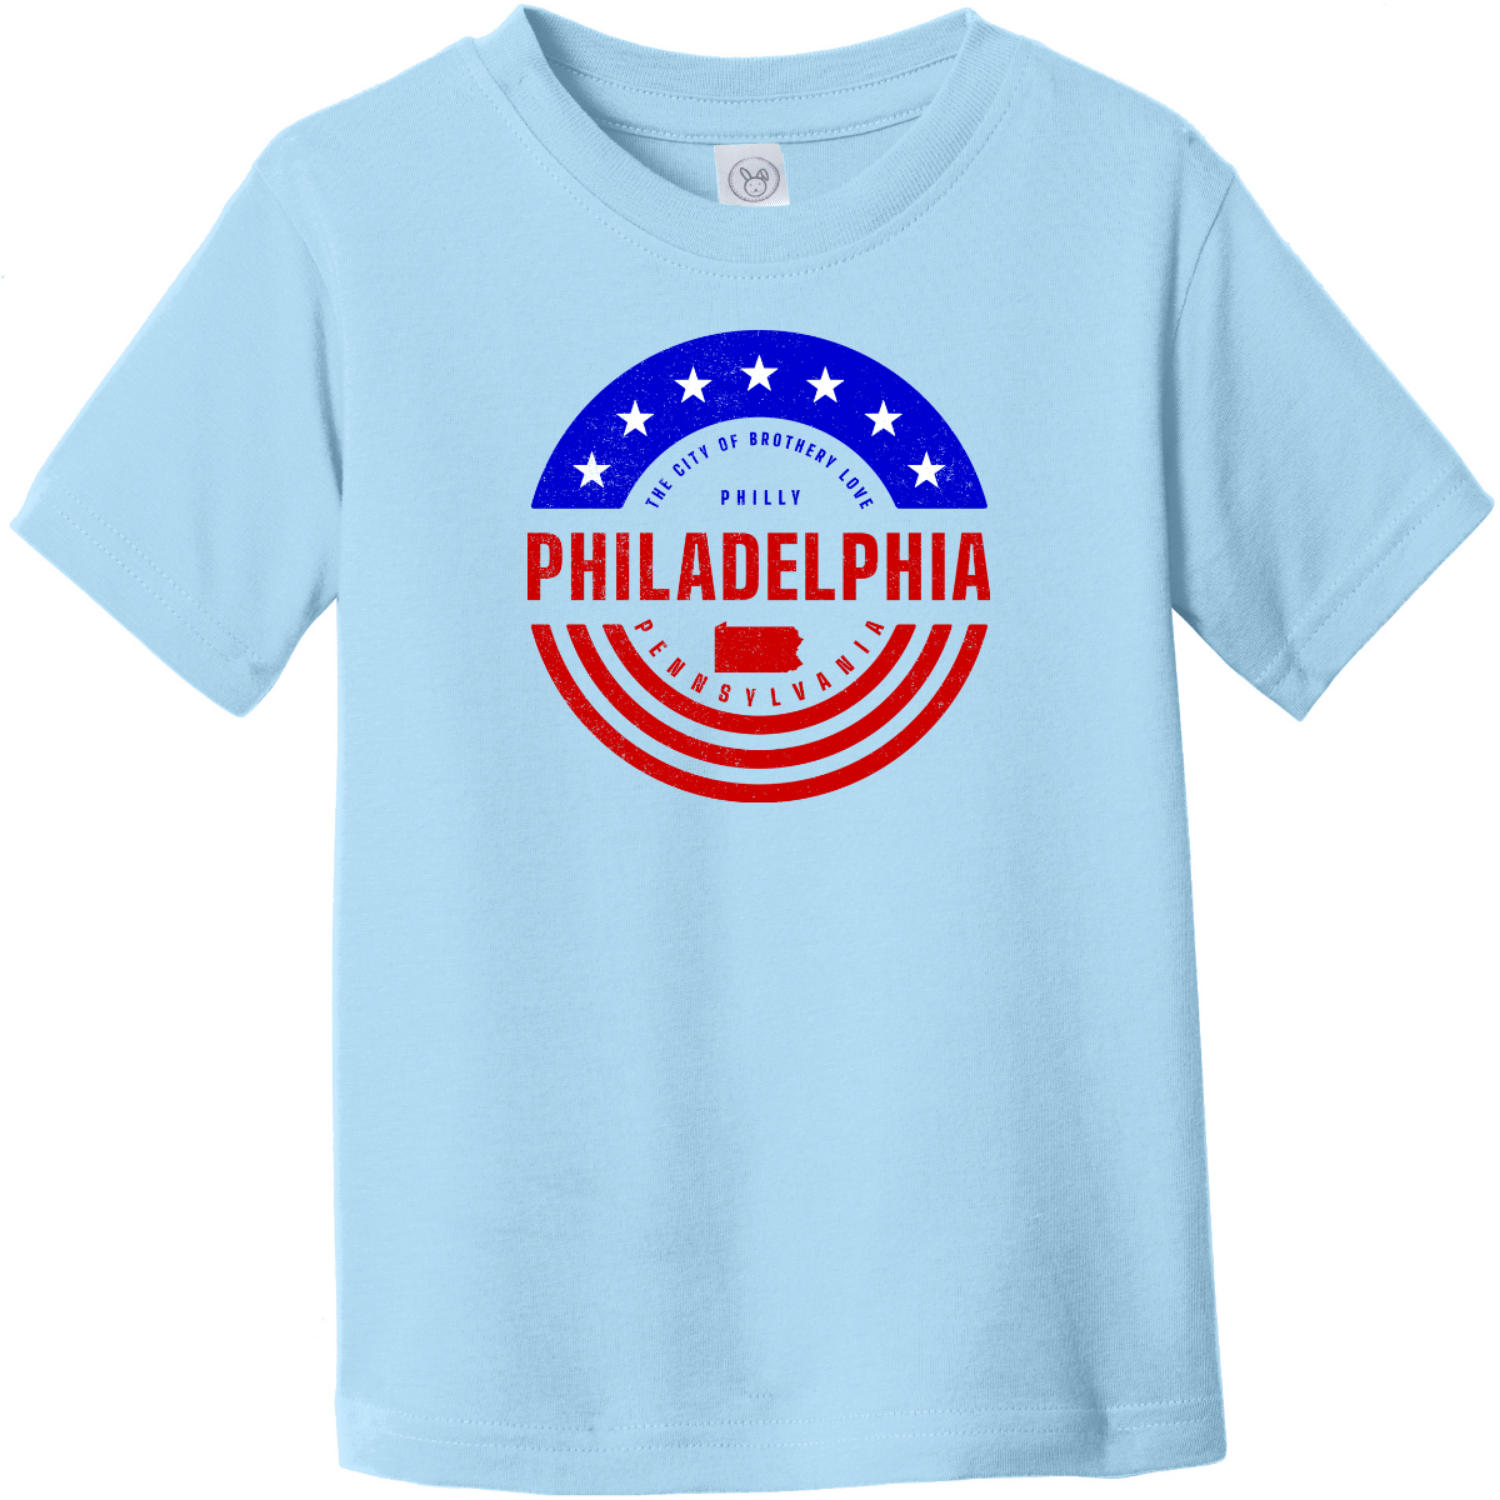 Philadelphia Pennsylvania Patriotic Toddler T-Shirt Light Blue Rabbit Skins Toddler Fine Jersey Tee RS3321